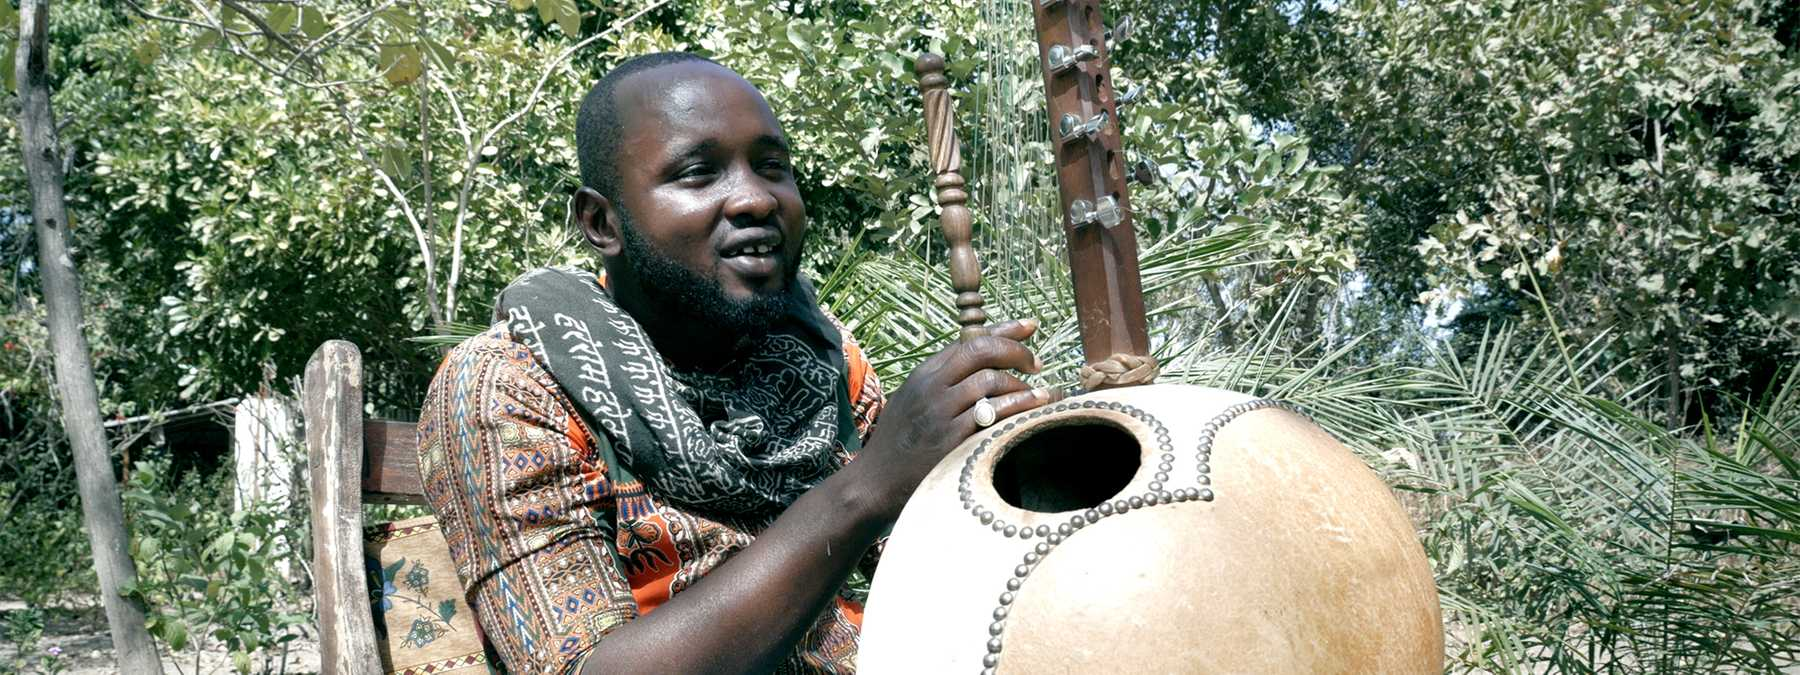 Mafu Conteh, kora virtuoso from The Gambia